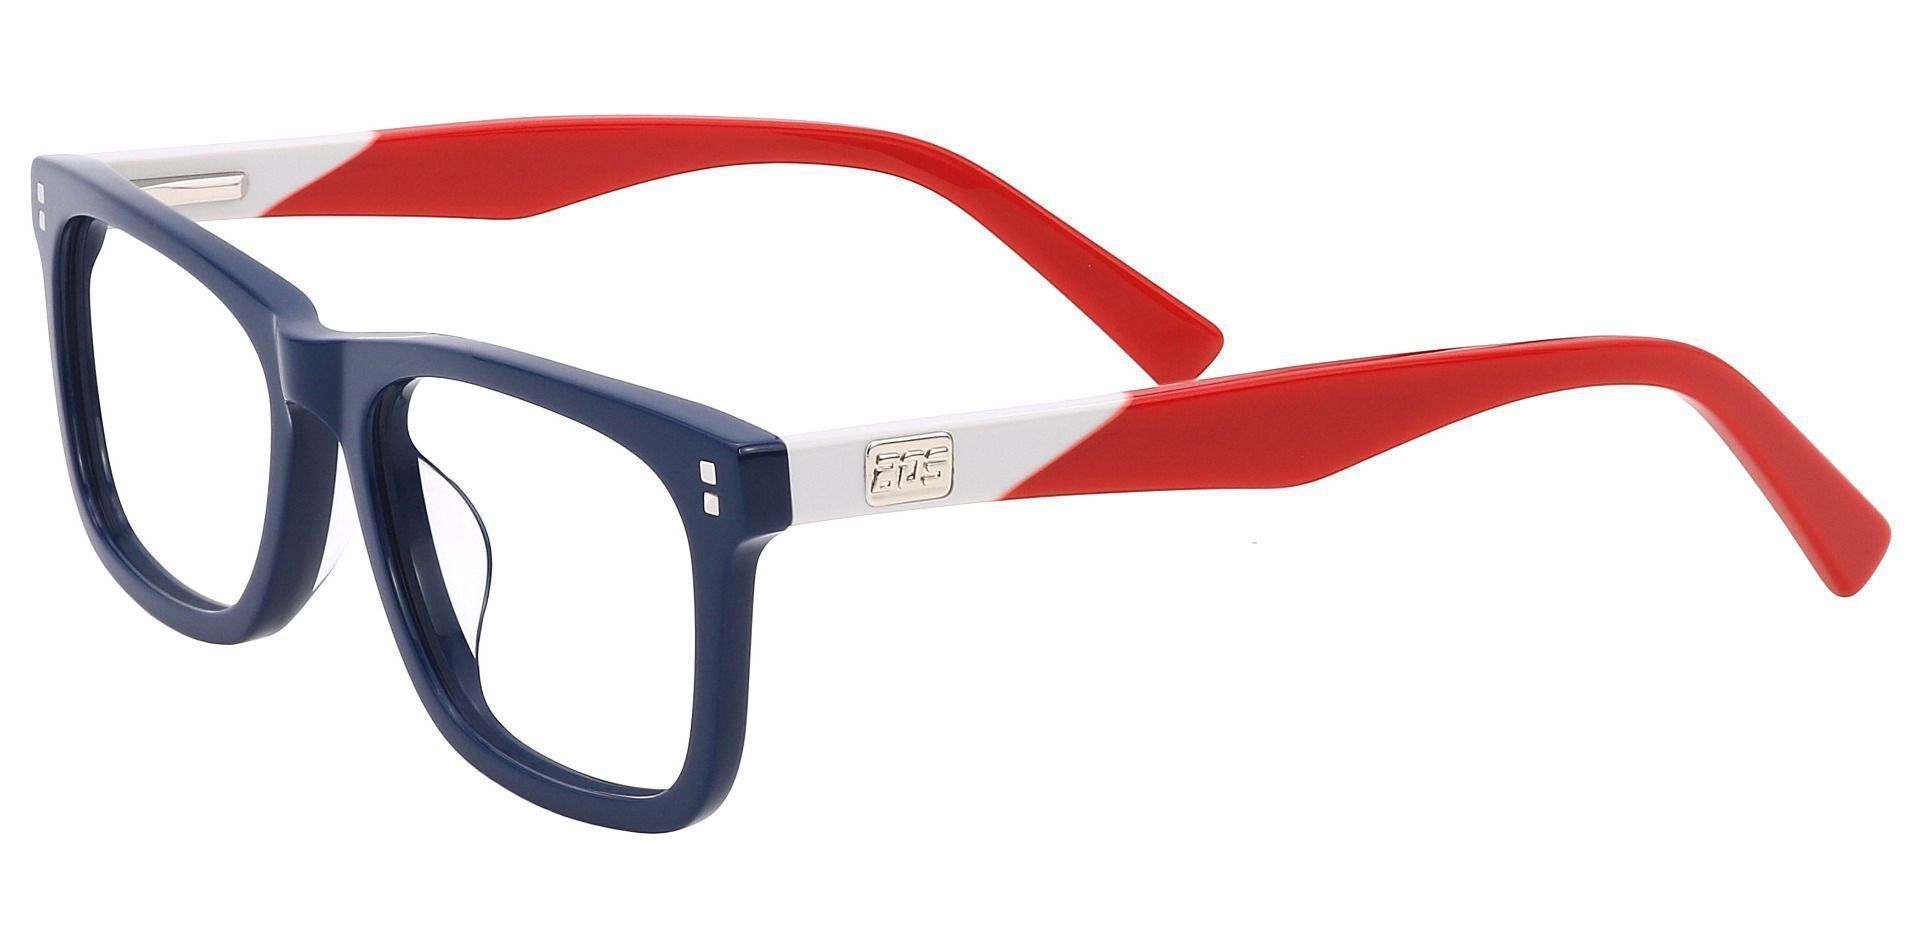 Newbury Rectangle Progressive Glasses - The Frame Is Blue And Red